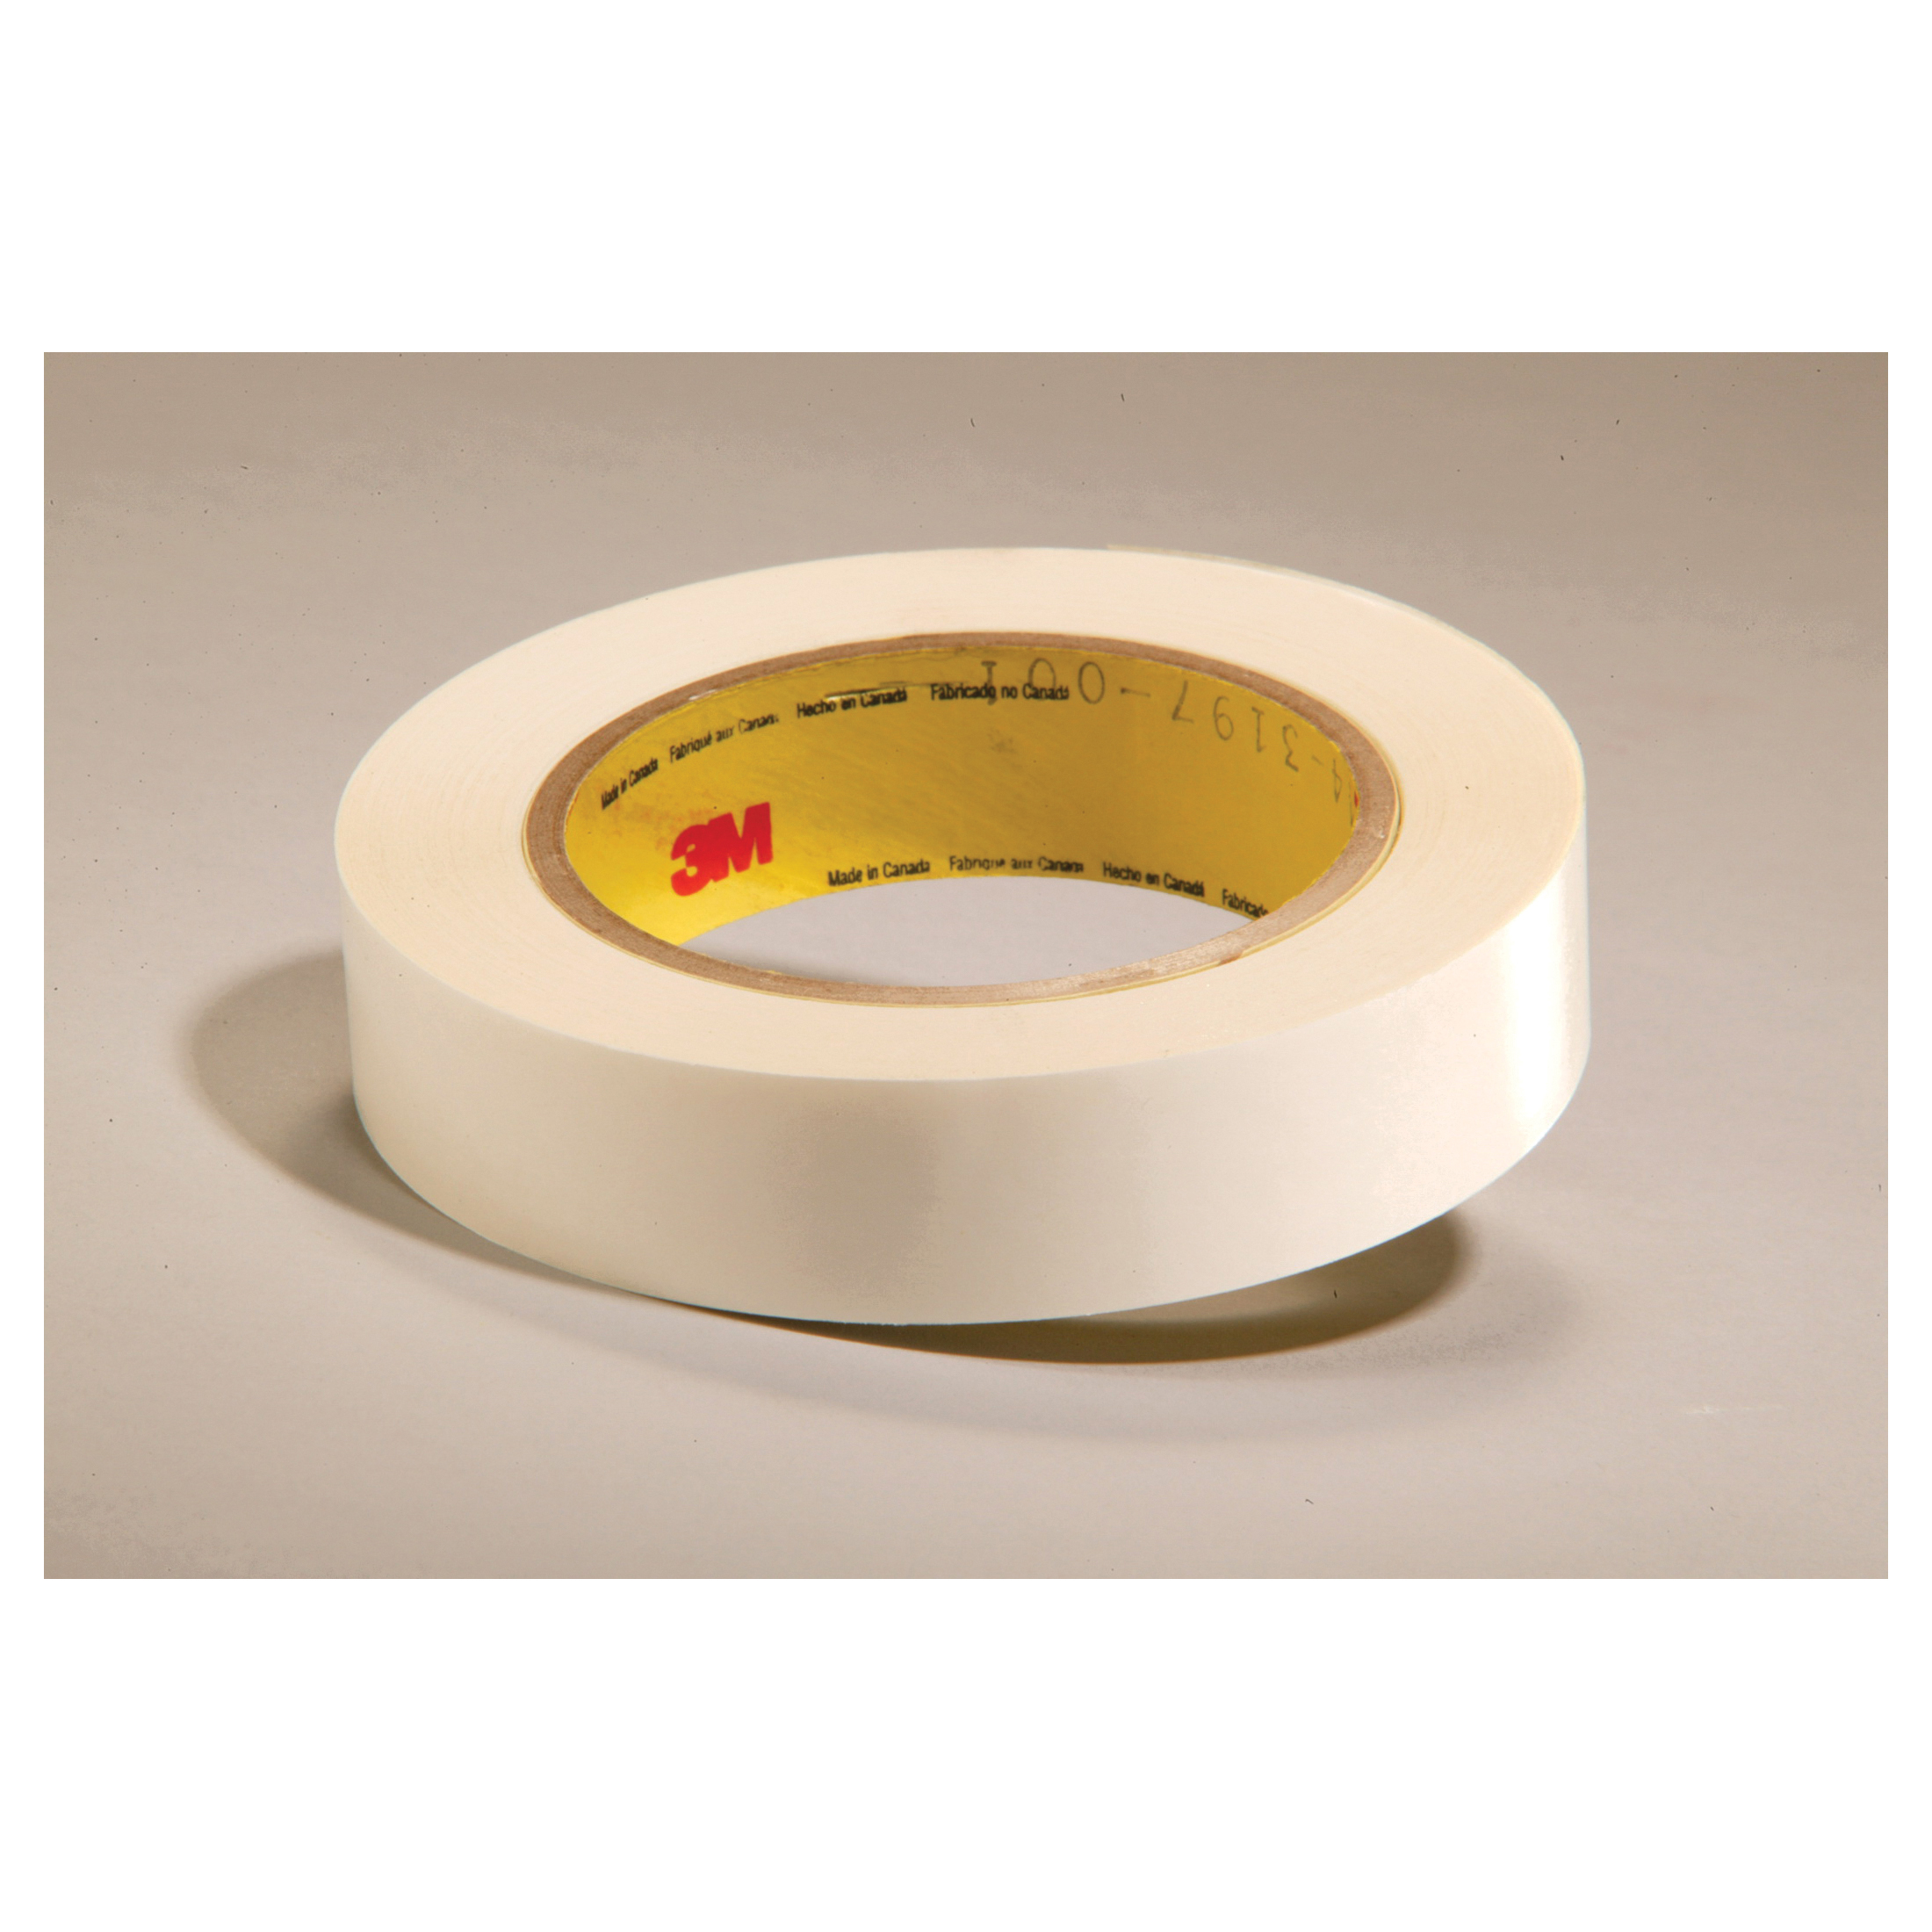 3M™ 021200-24400 Double Coated Film Tape, 36 yd L x 1 in W, 8.1 mil THK, Acrylic Adhesive, Polyester Film Backing, Clear